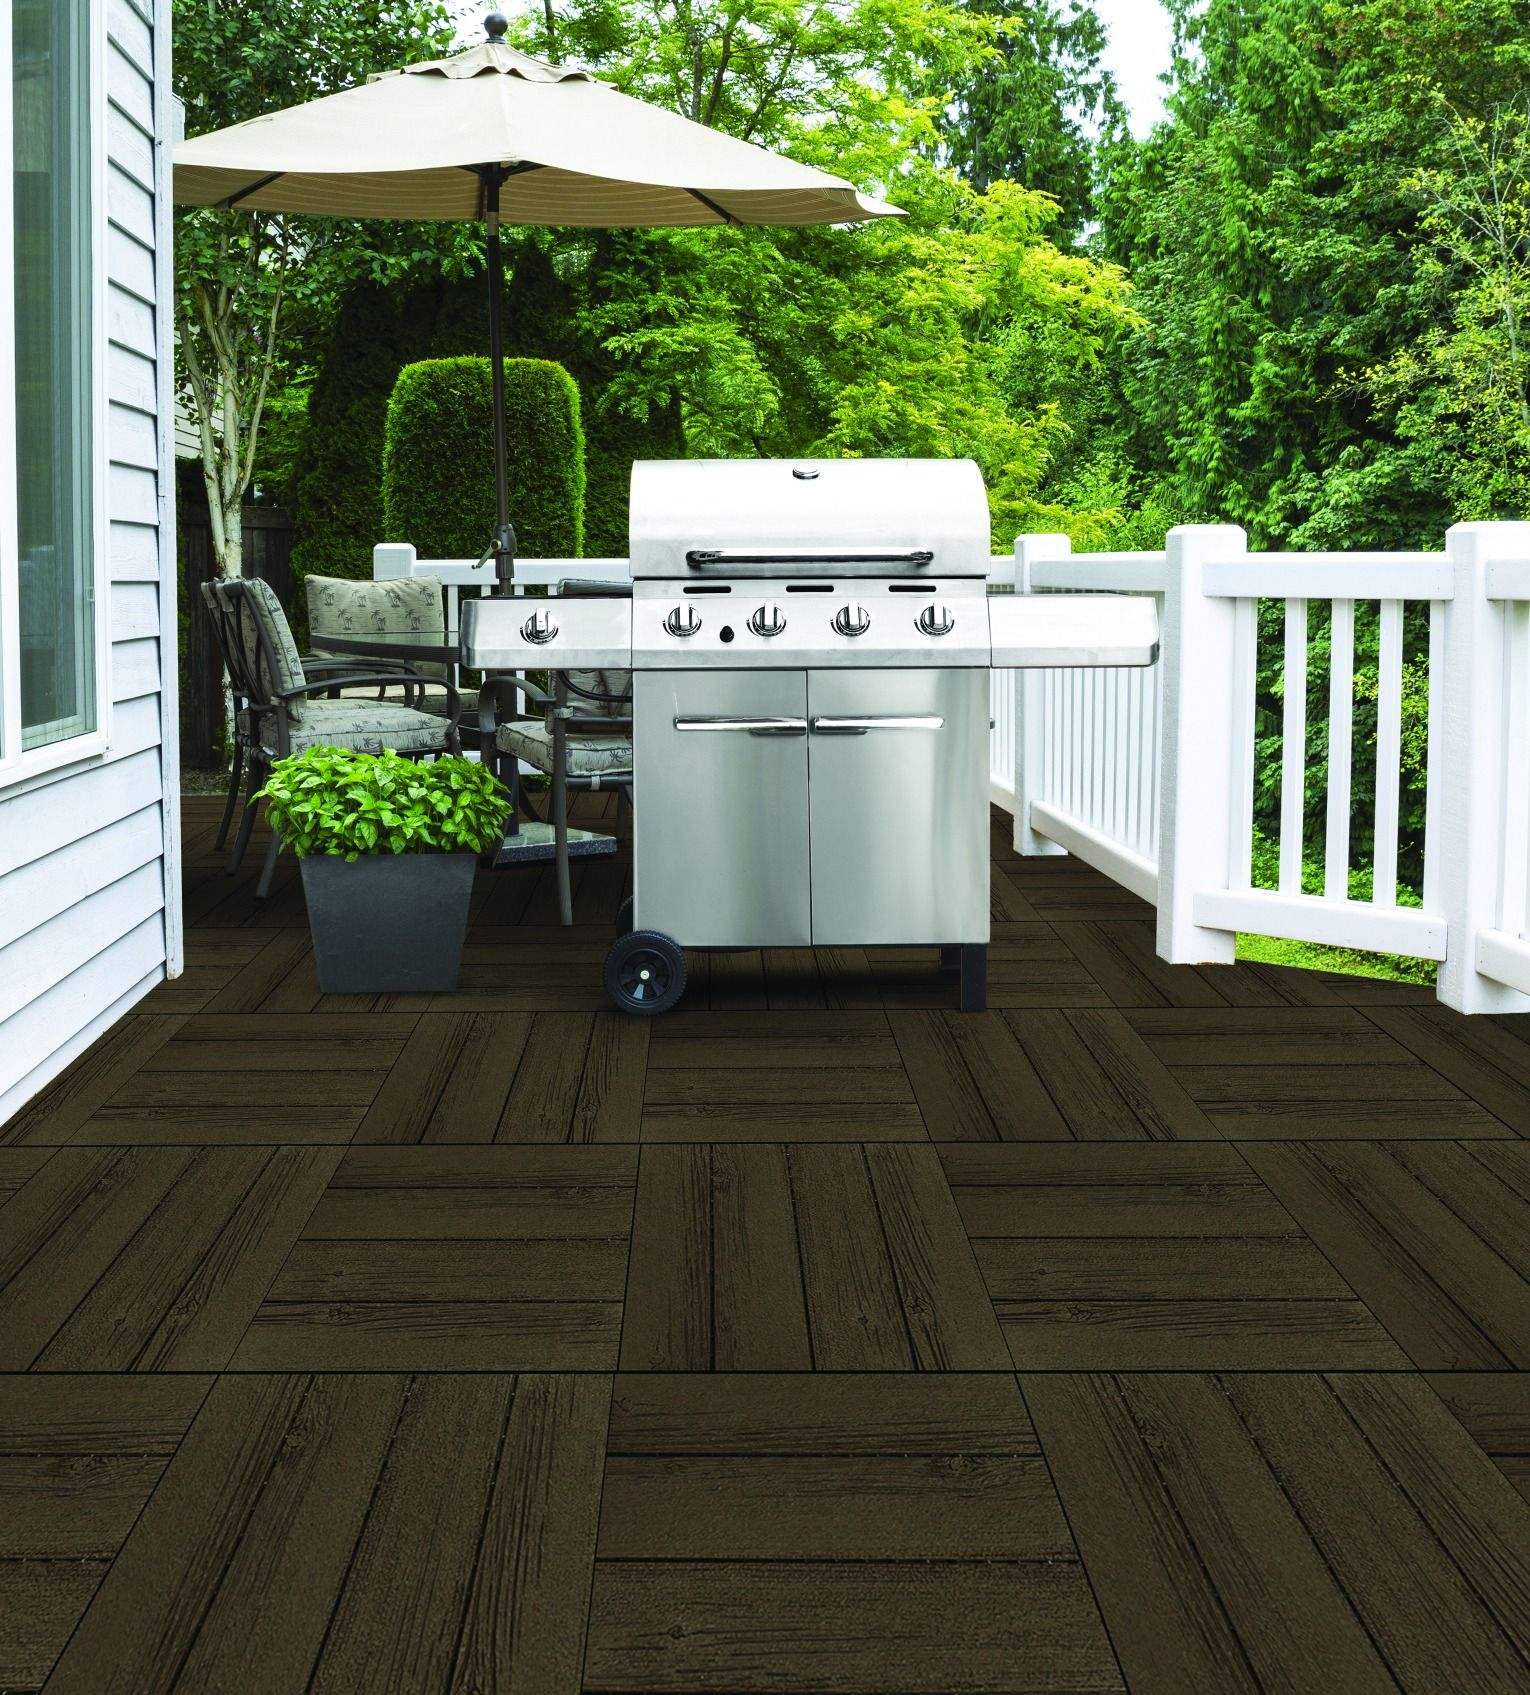 Transform your outdoor living area into a space with